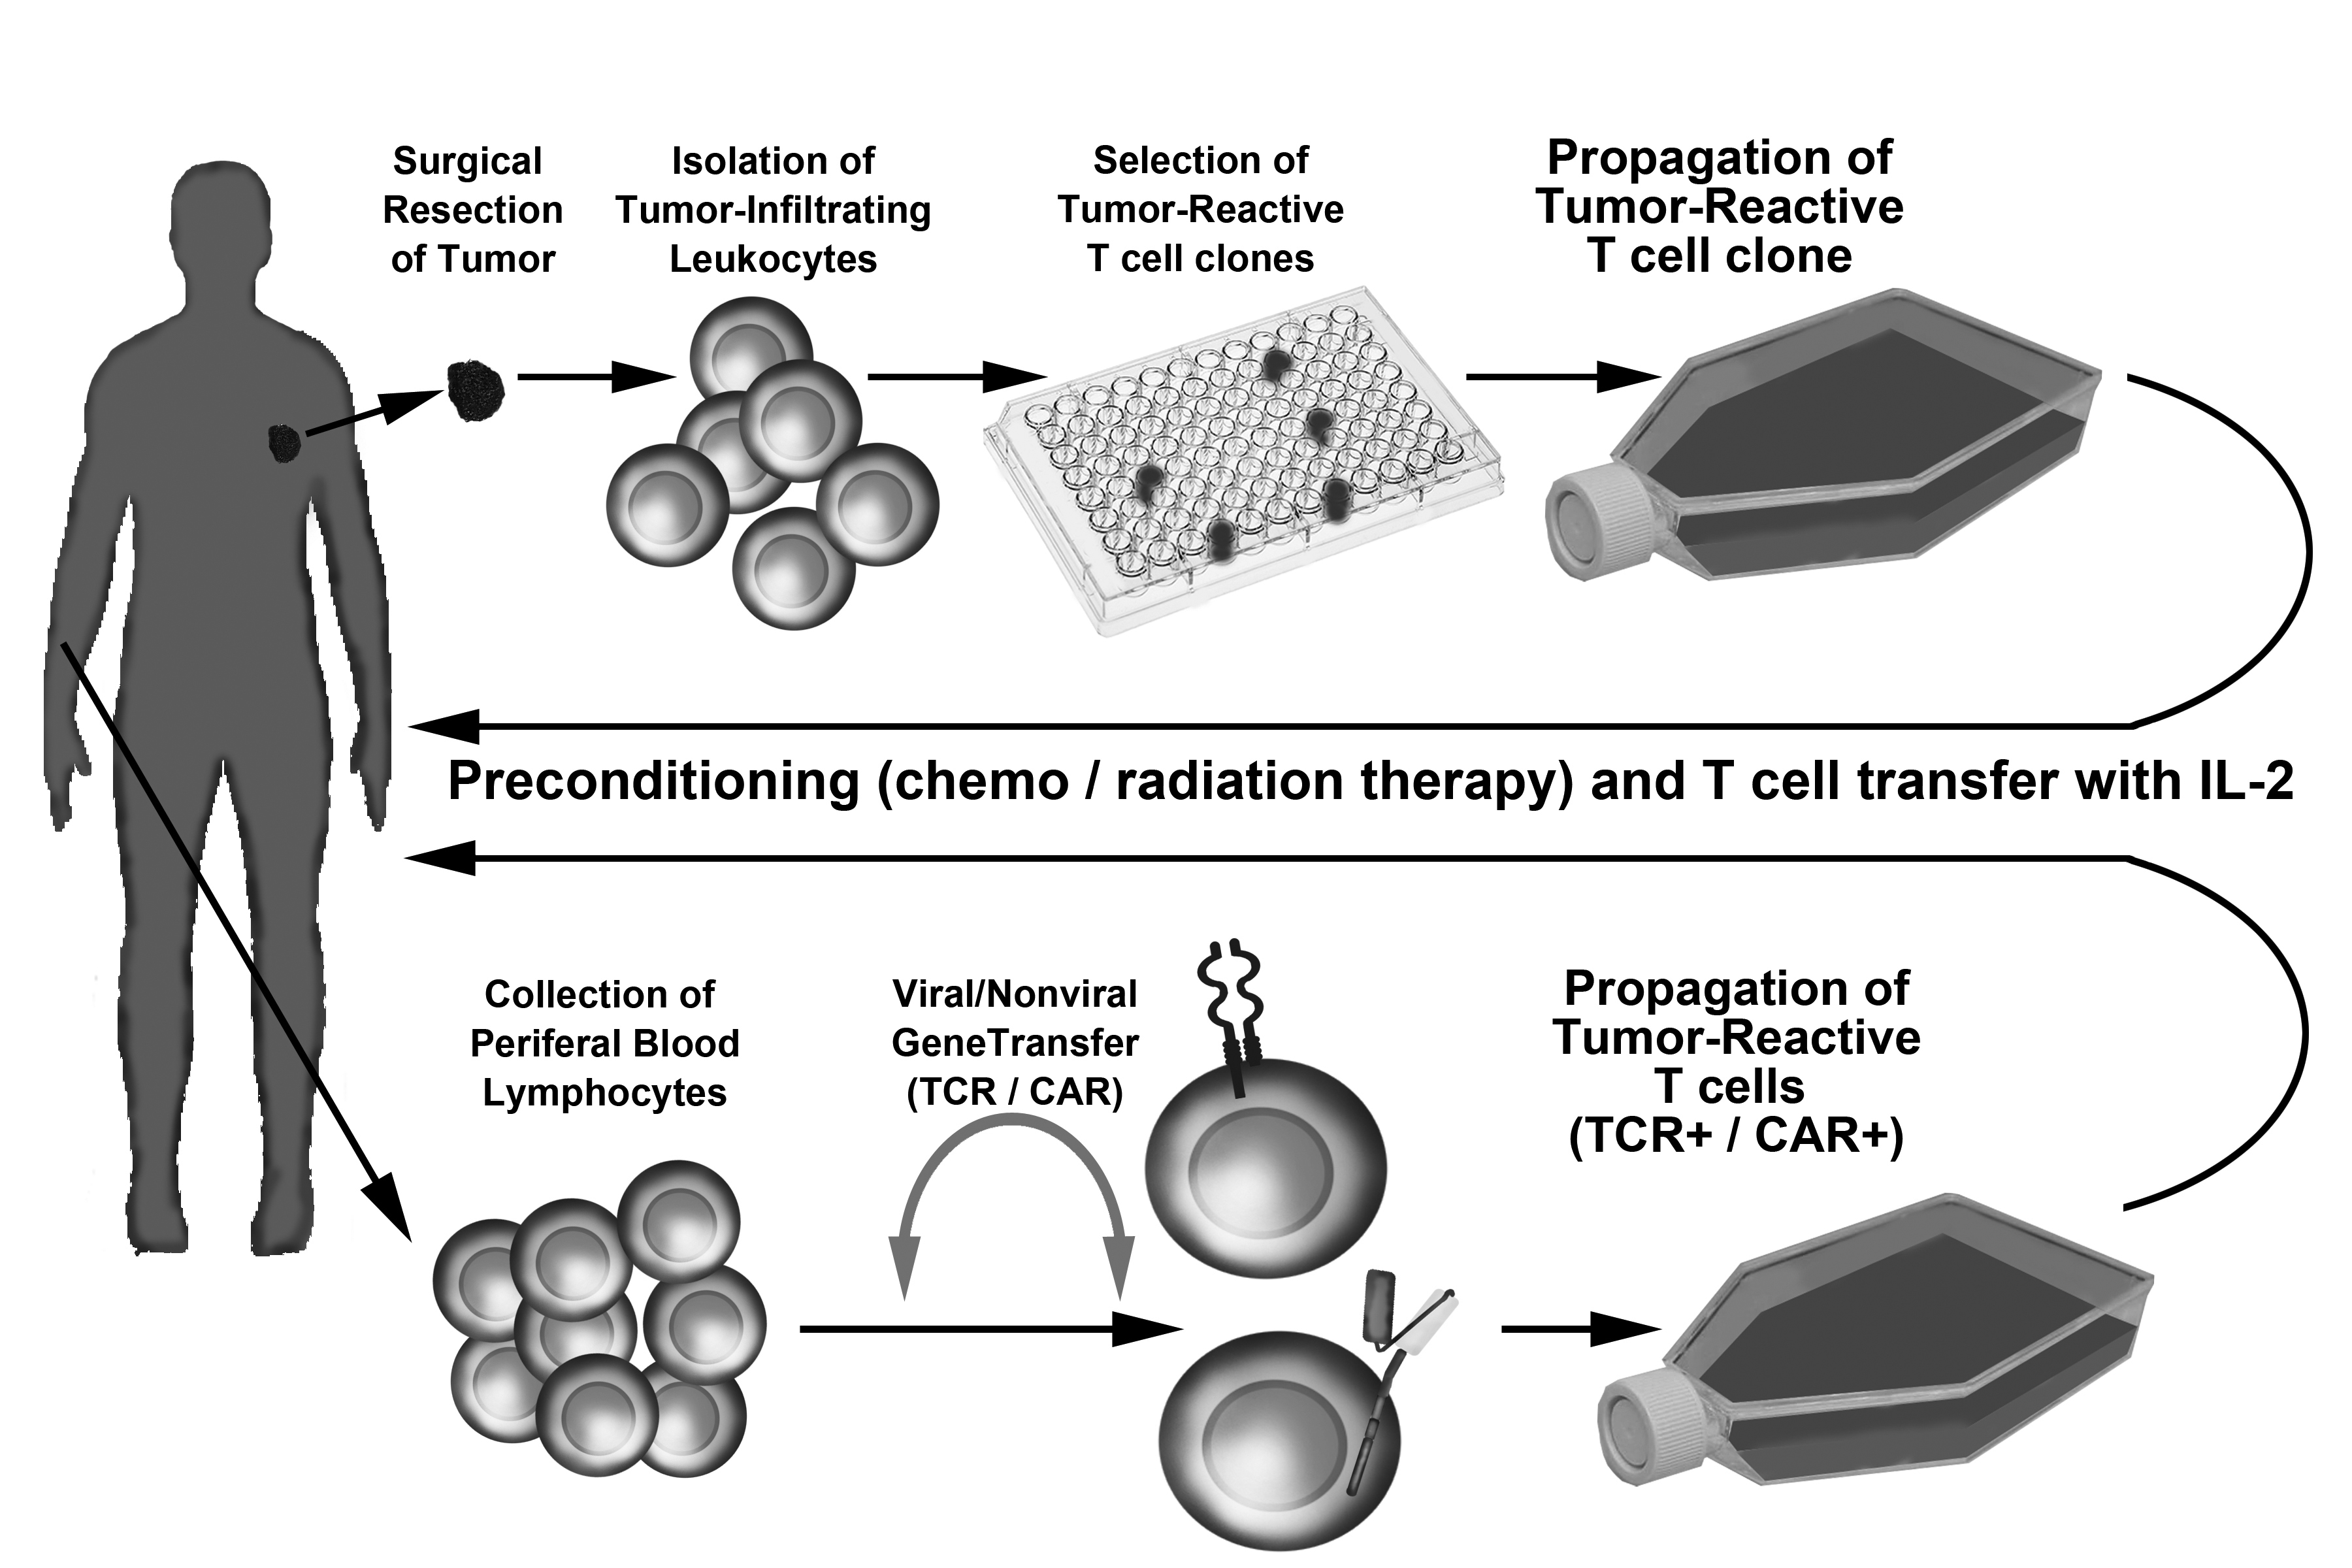 Recombinant Dna Technology In Emerging Modalities For